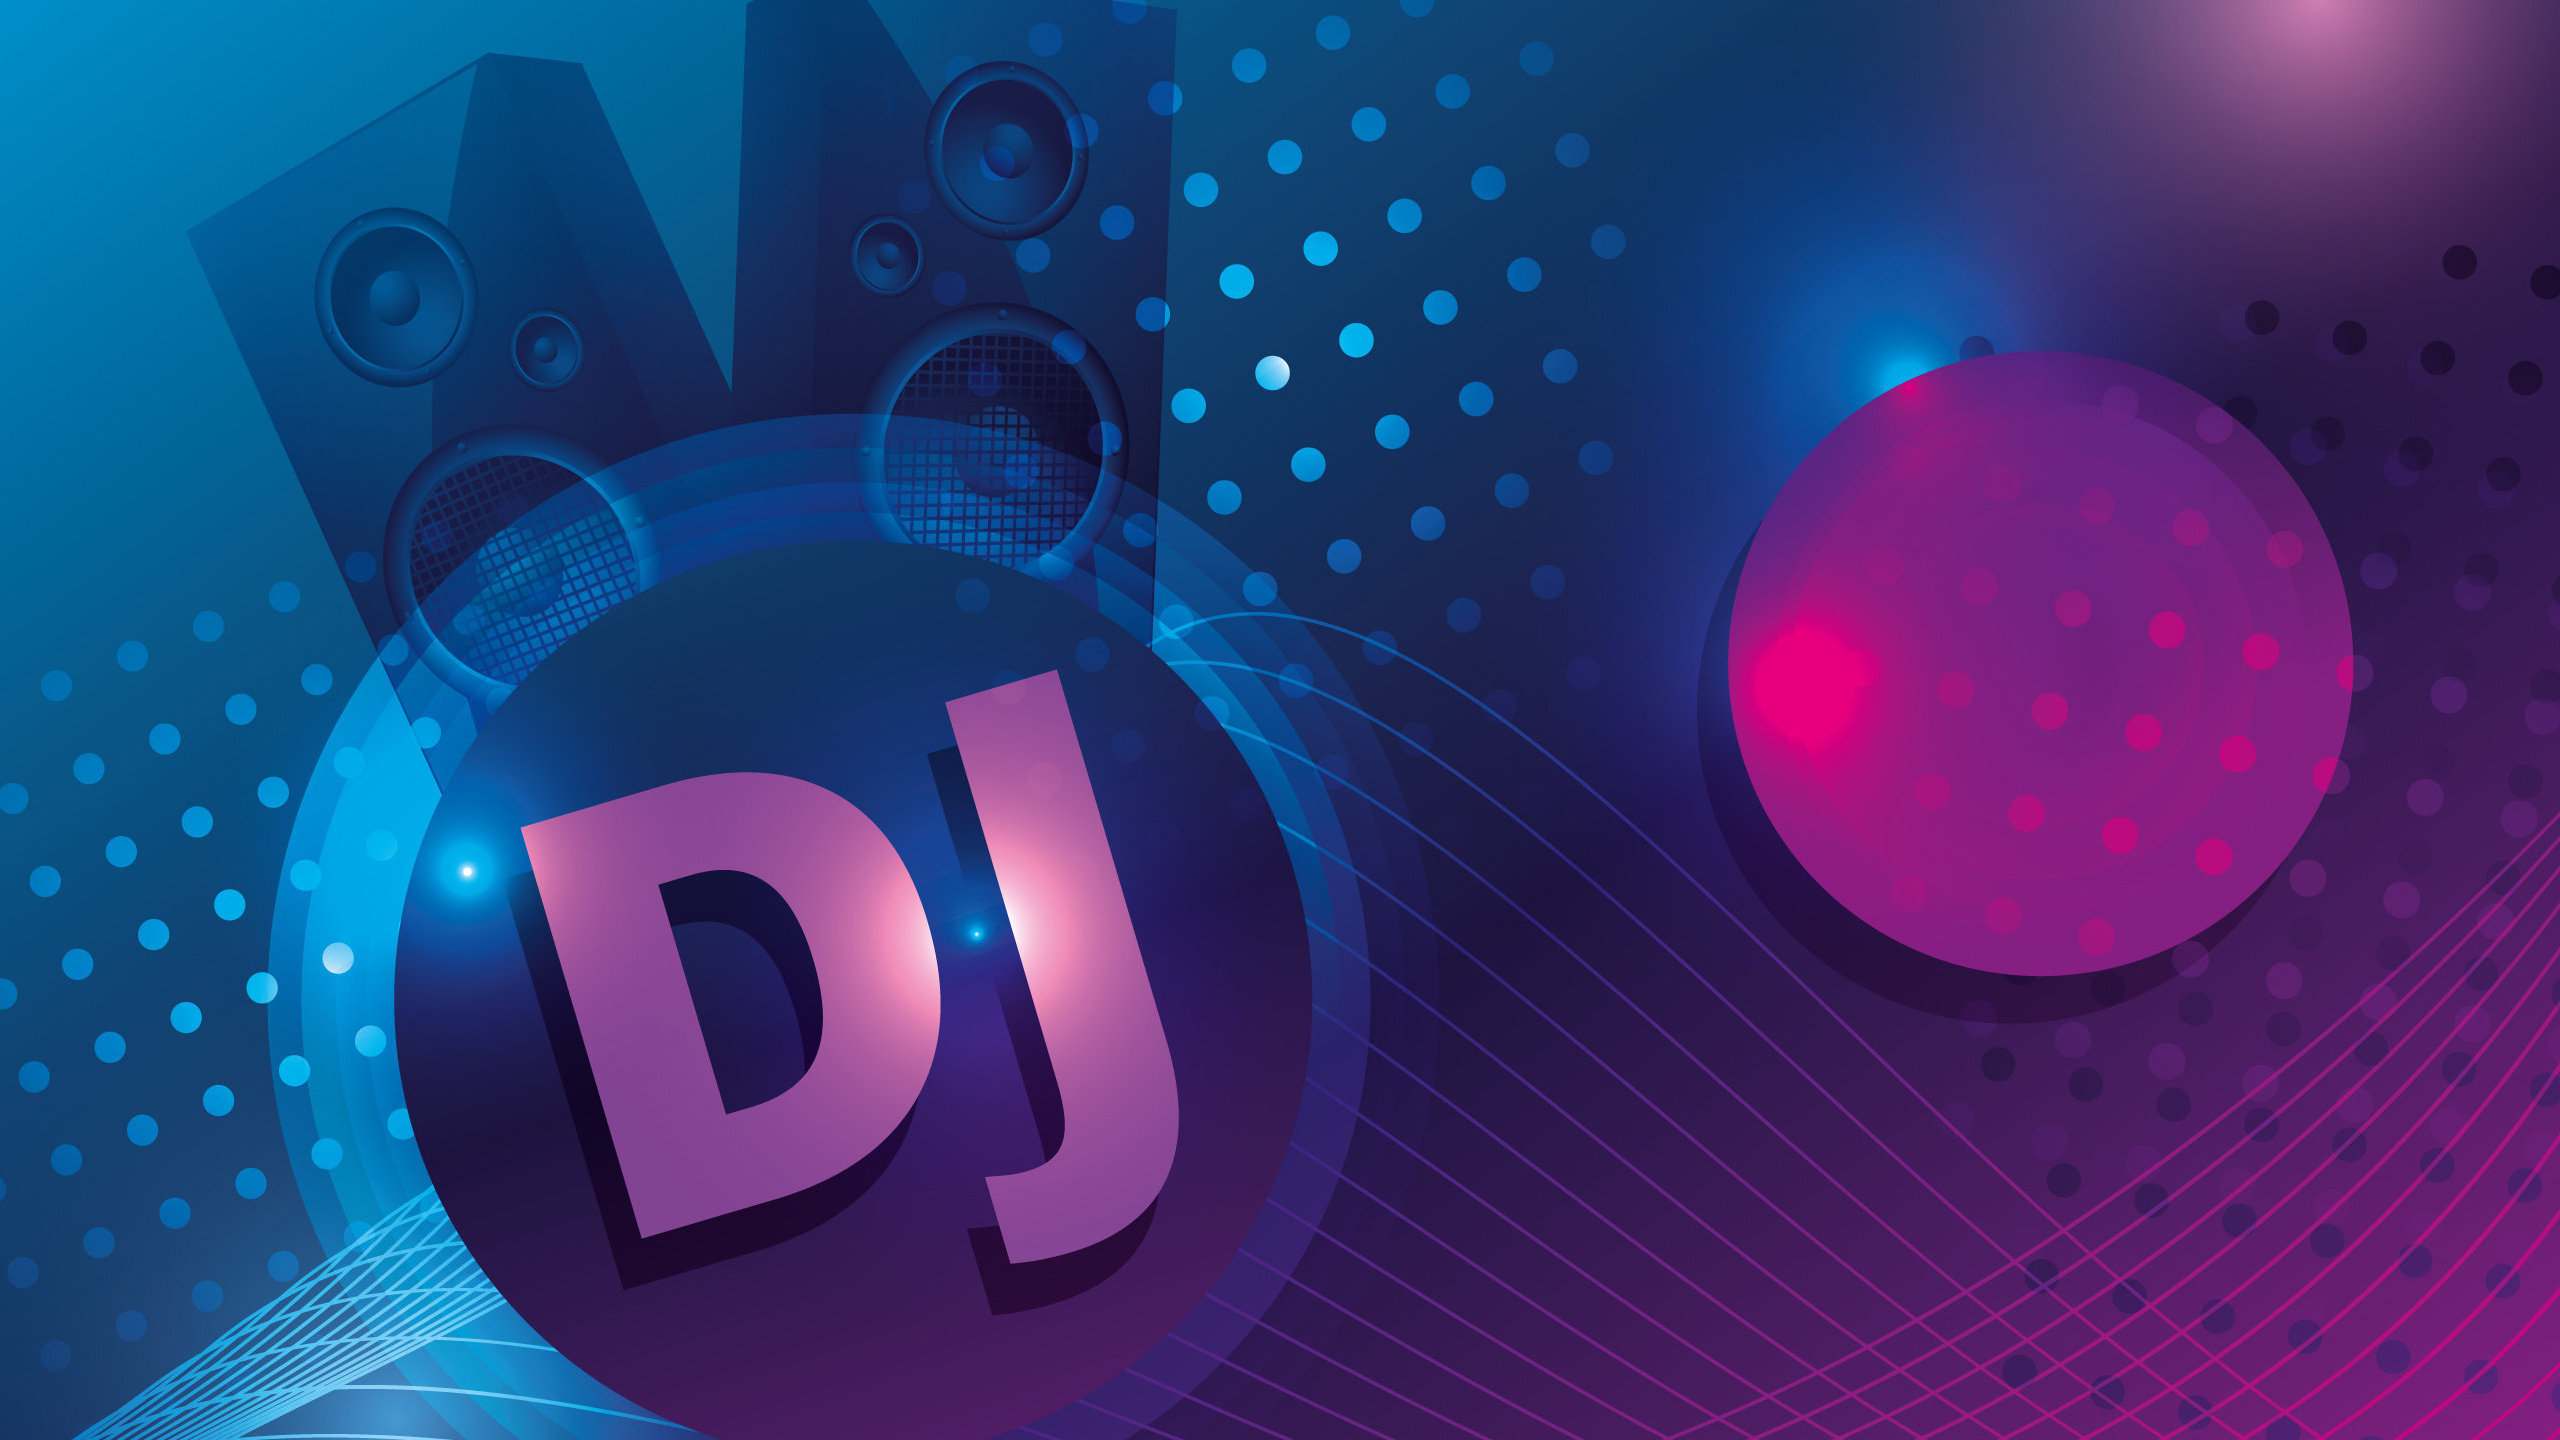 DJ Wallpaper 7   2560 X 1440 stmednet 2560x1440